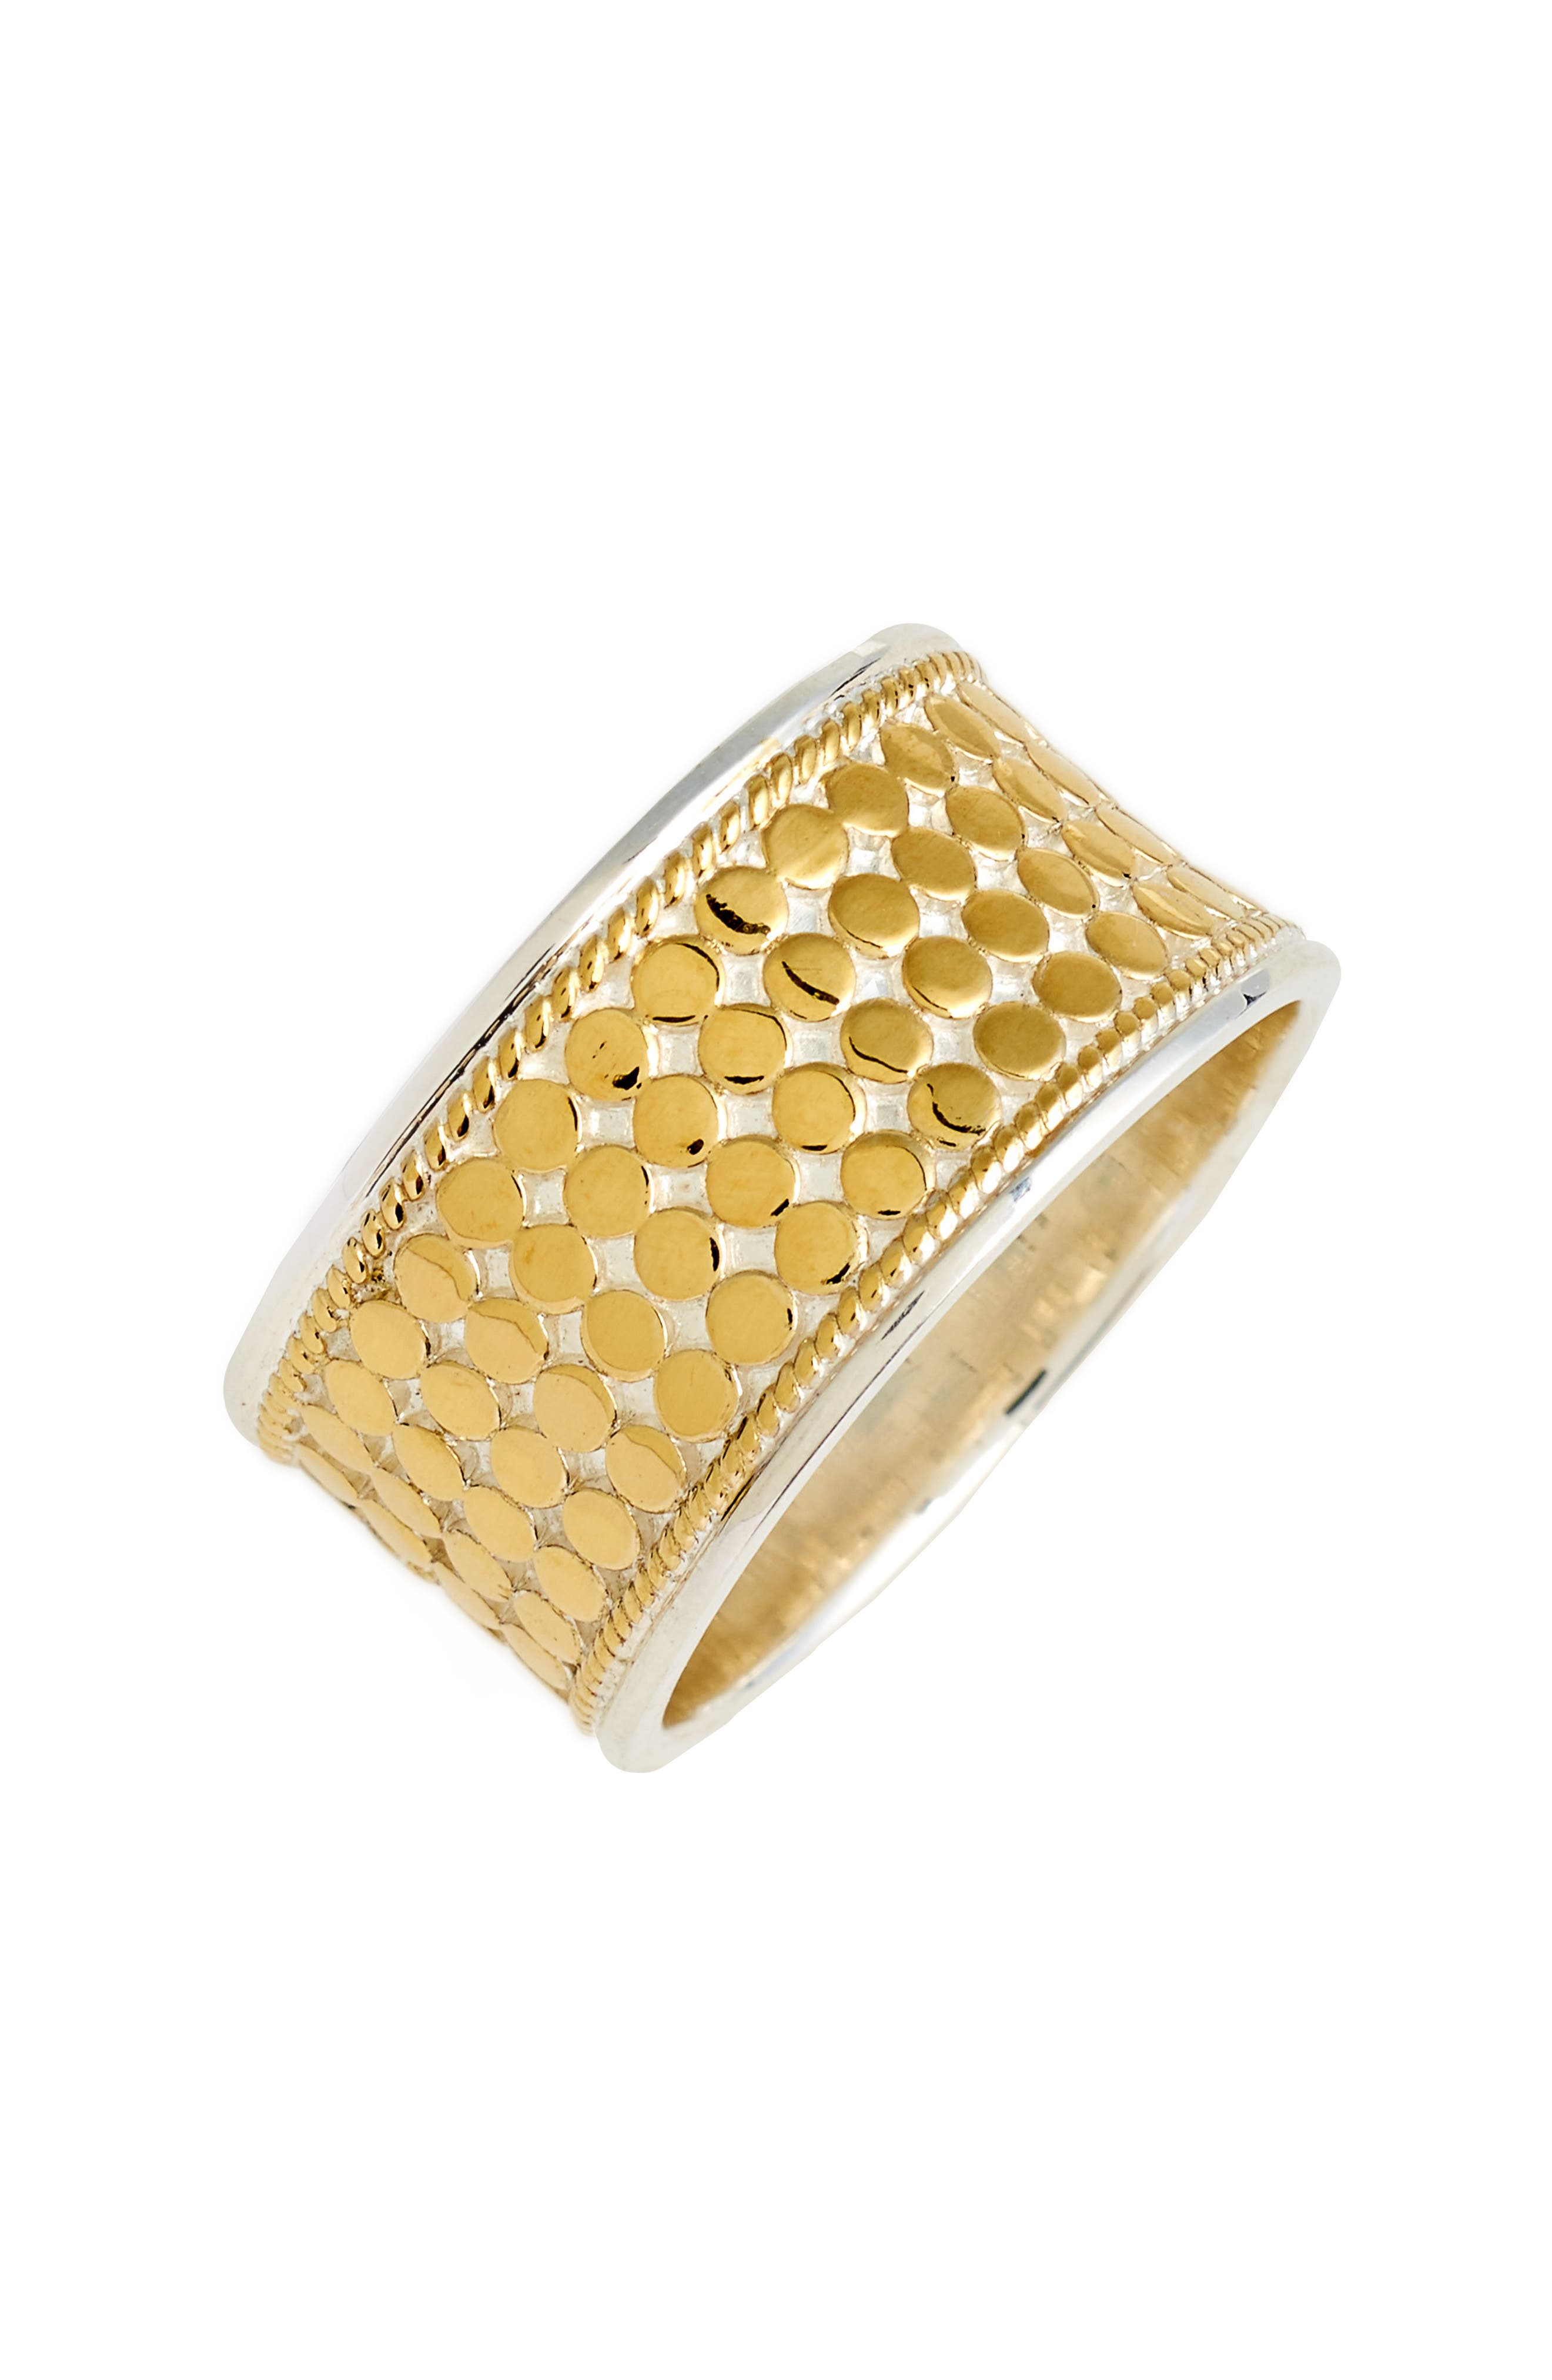 Vermeil Cigar Band Ring,                         Main,                         color, Gold